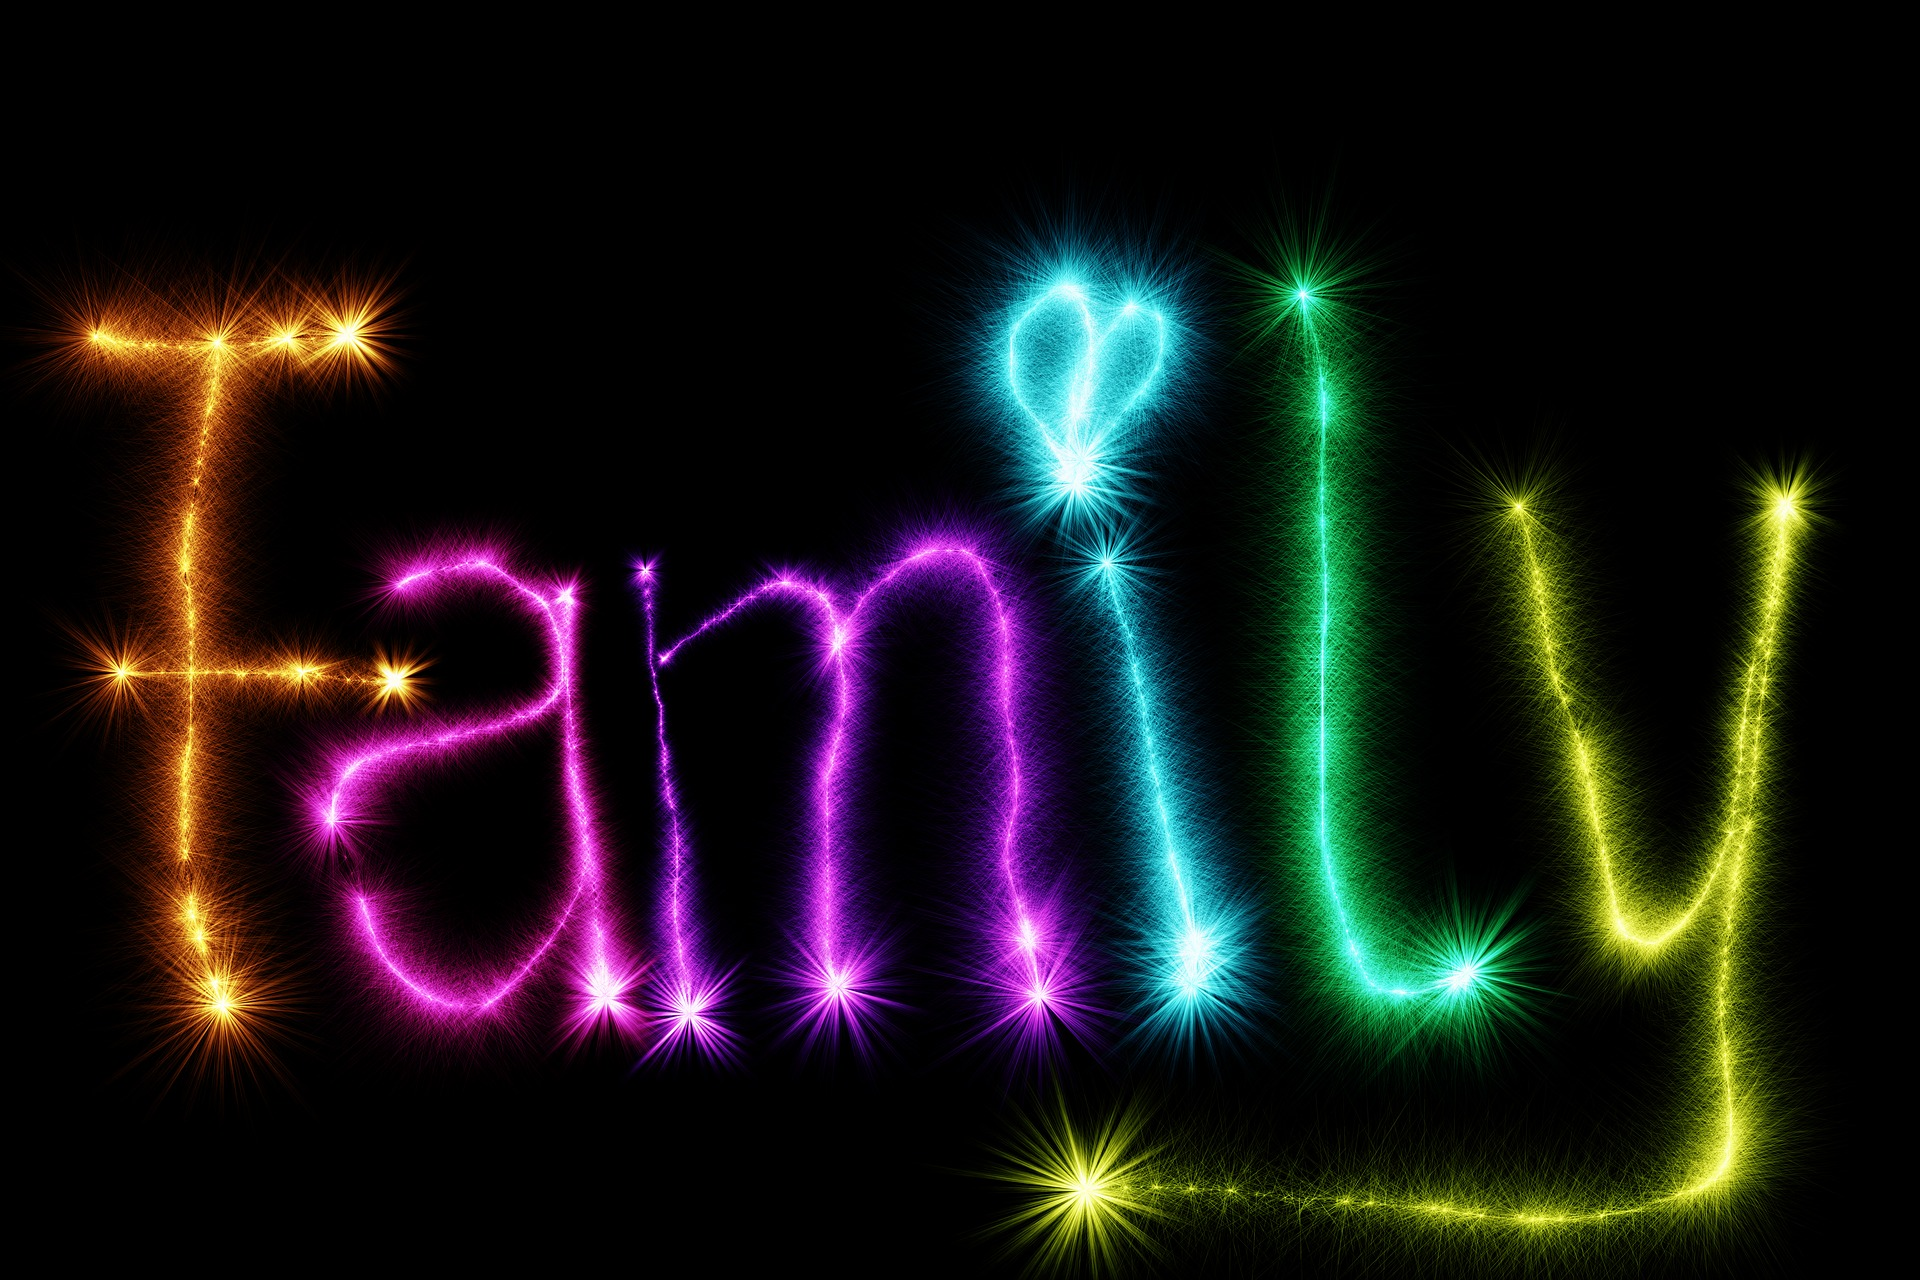 Family sign written in neon letters, with a heart instead of a circle on top of the i.